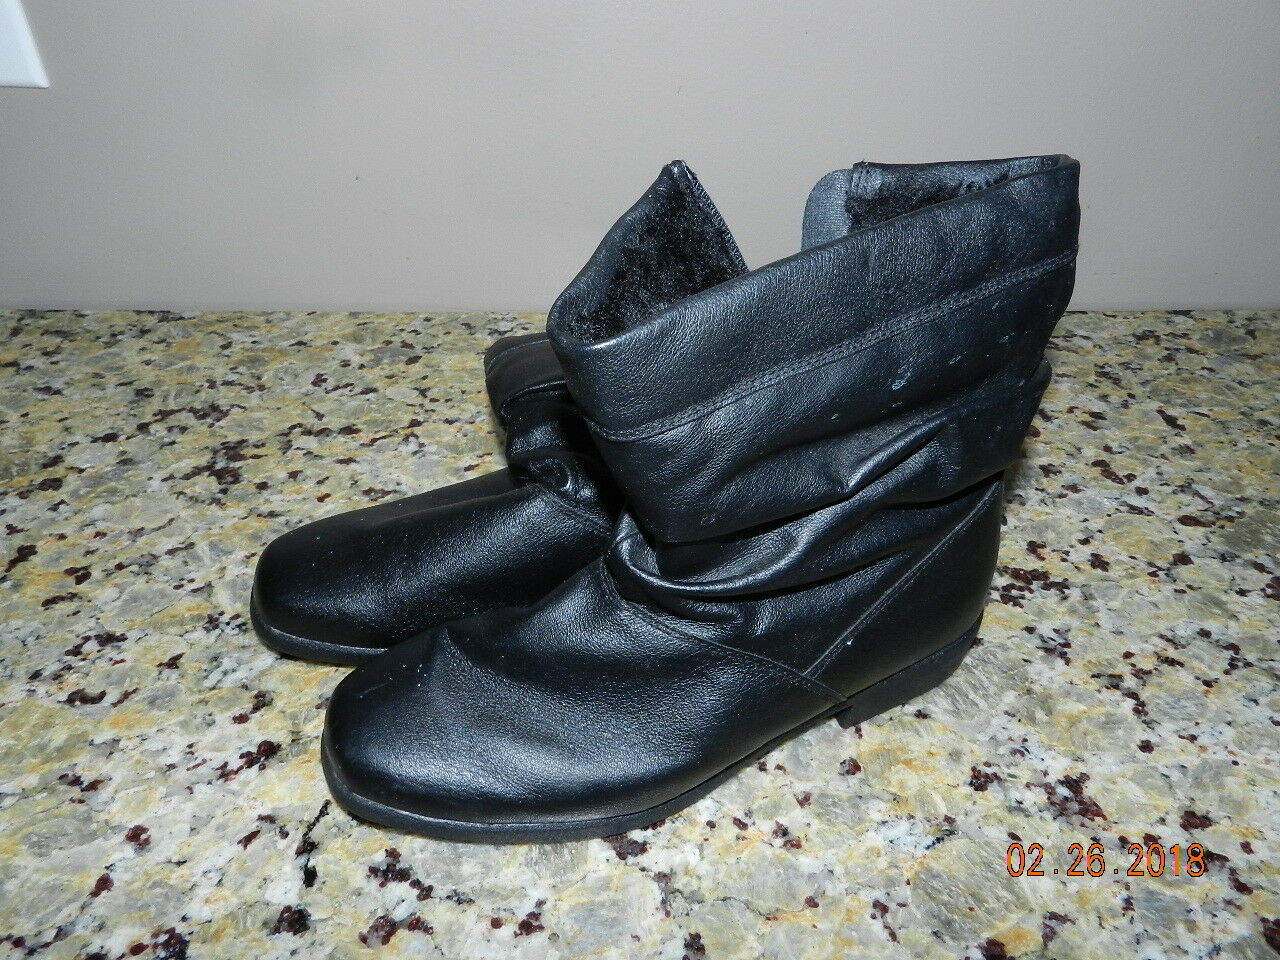 Ladies Totes Weather Protector Boots Black  Size 7.5M